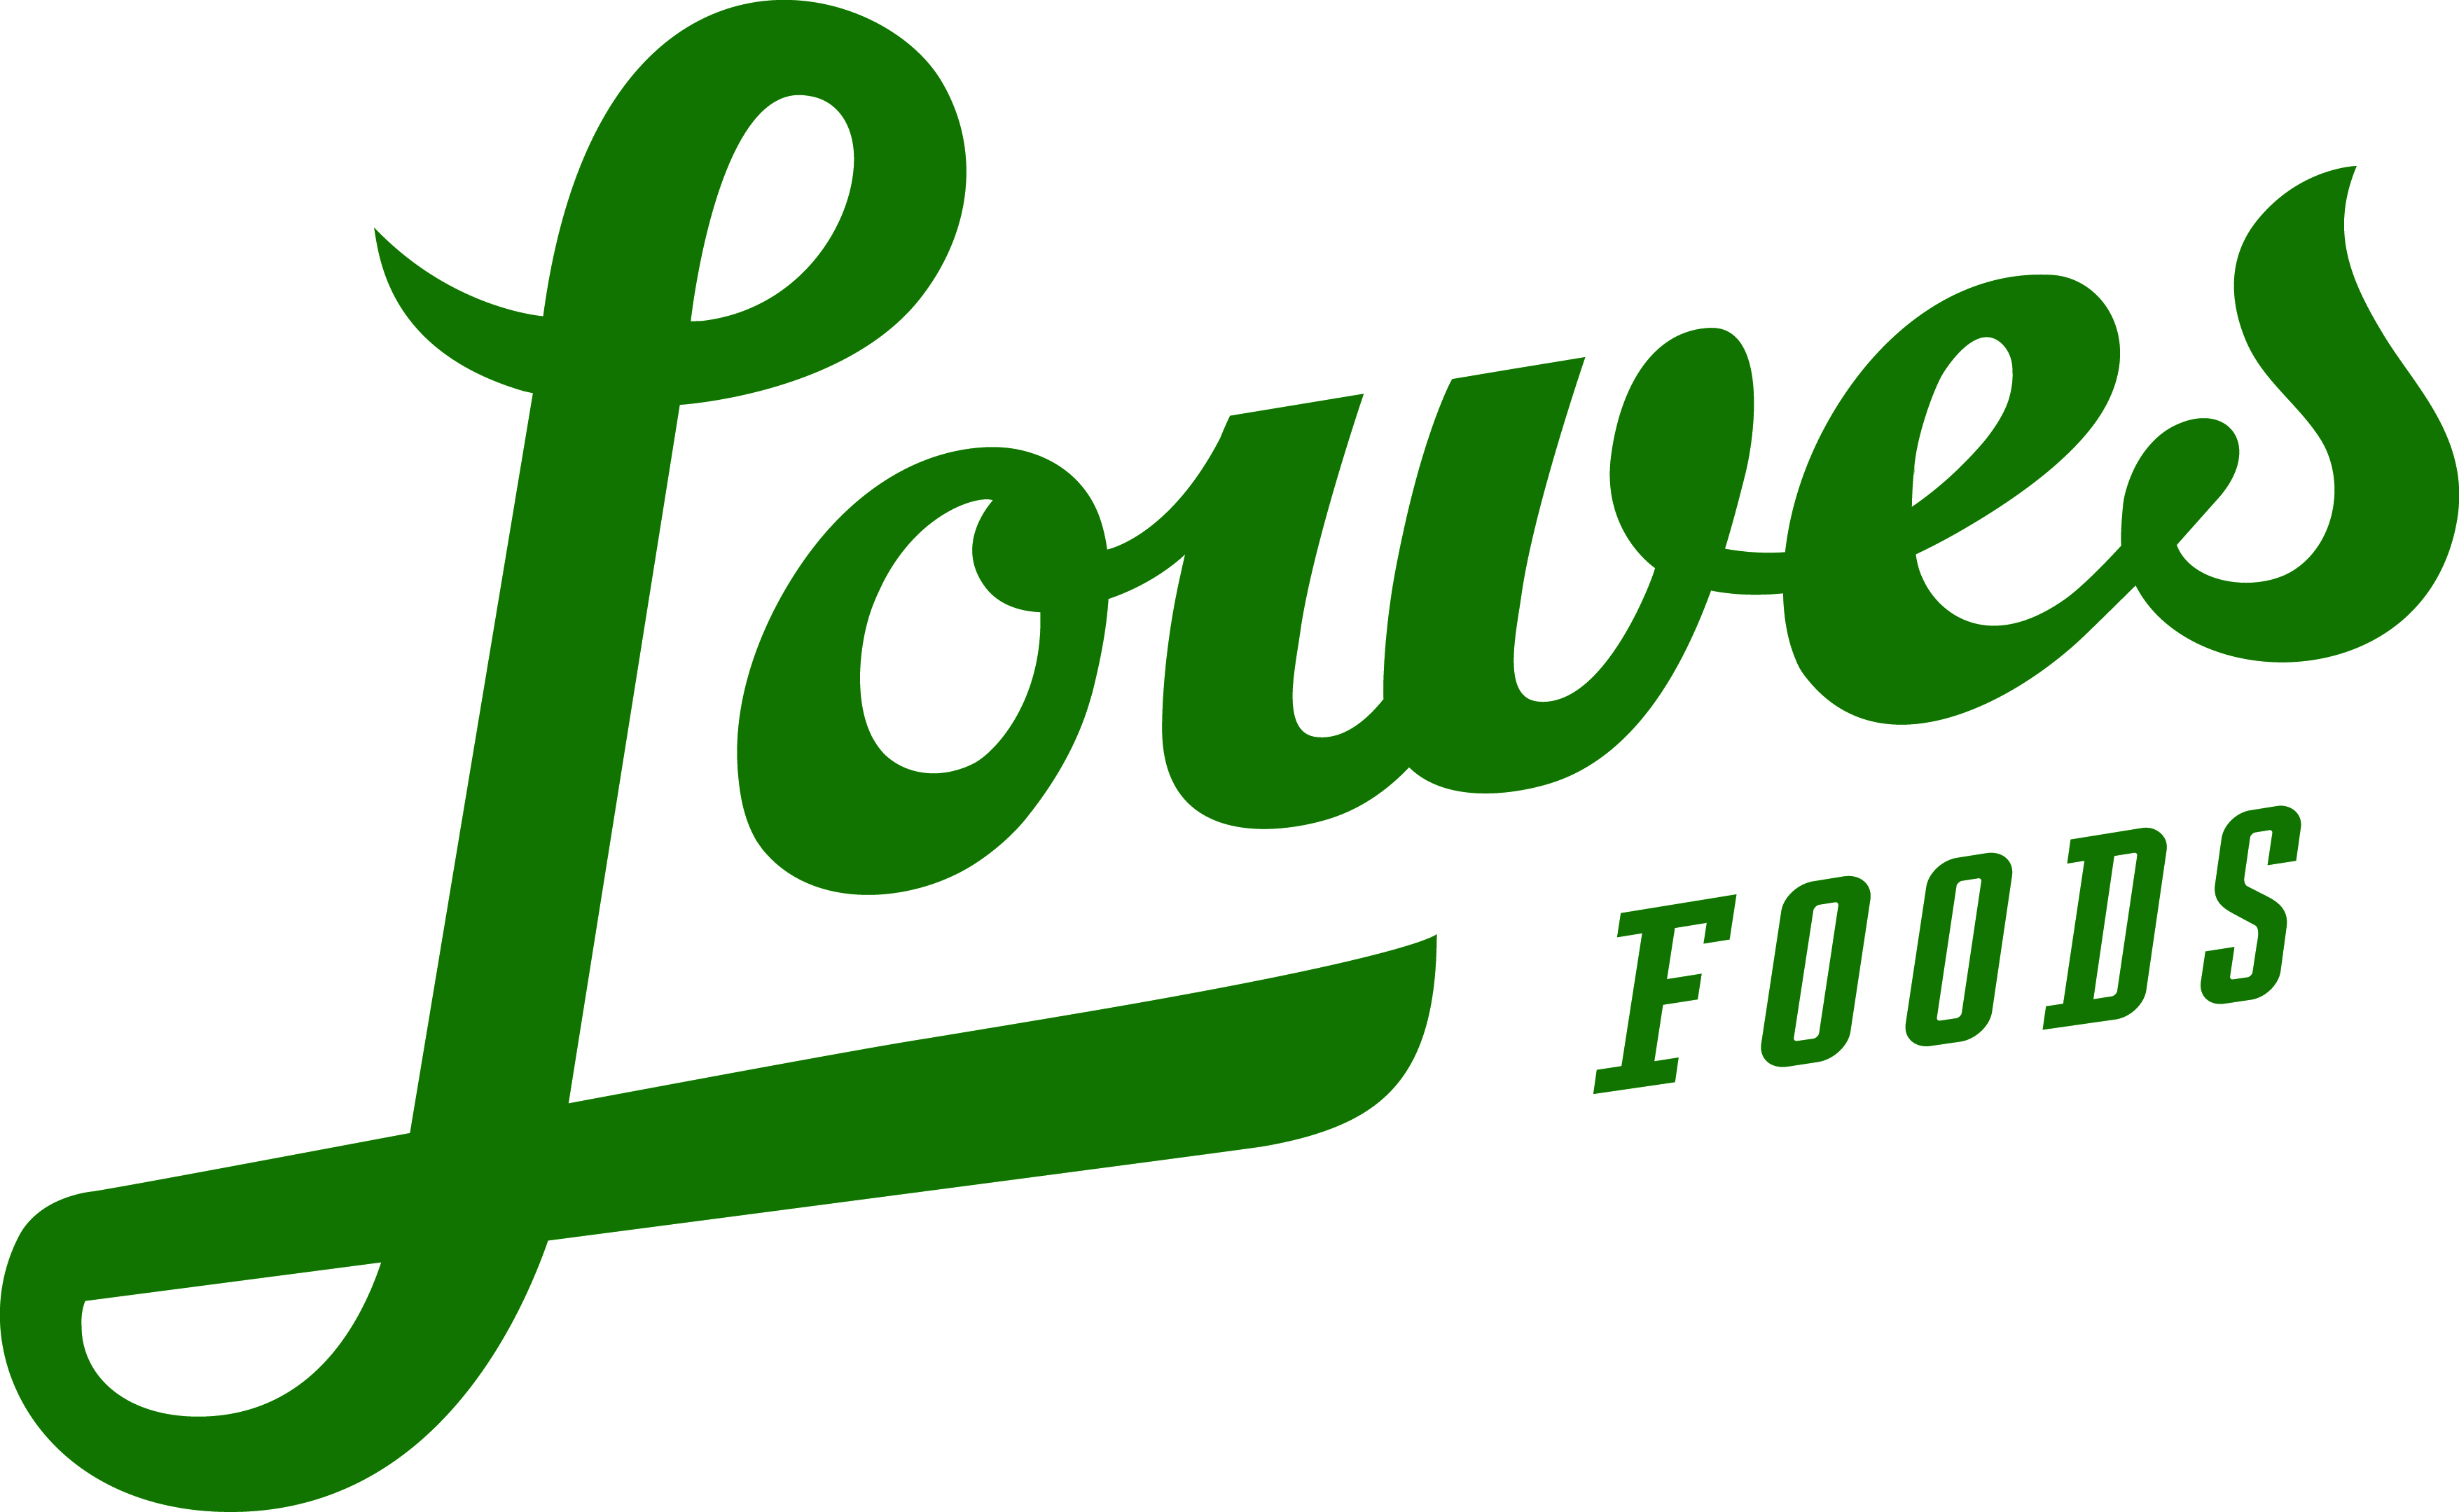 Lowes Foods New Logo